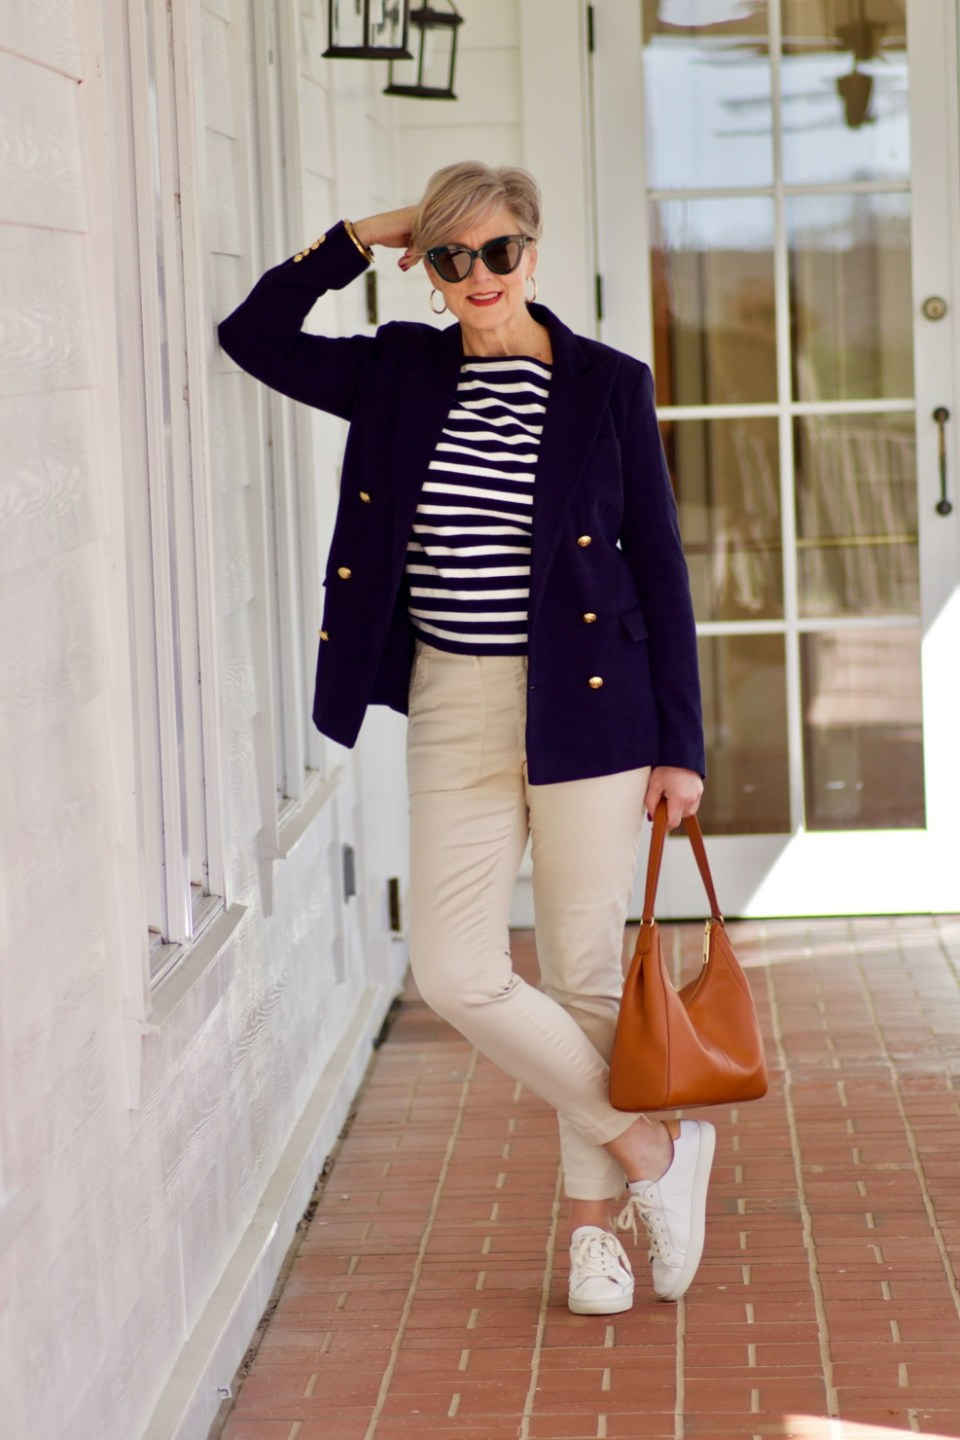 beth from Style at a Certain Age wears J.Crew striped tee, chinos, Ralph Lauren navy blue knit blazer, and white sneakers